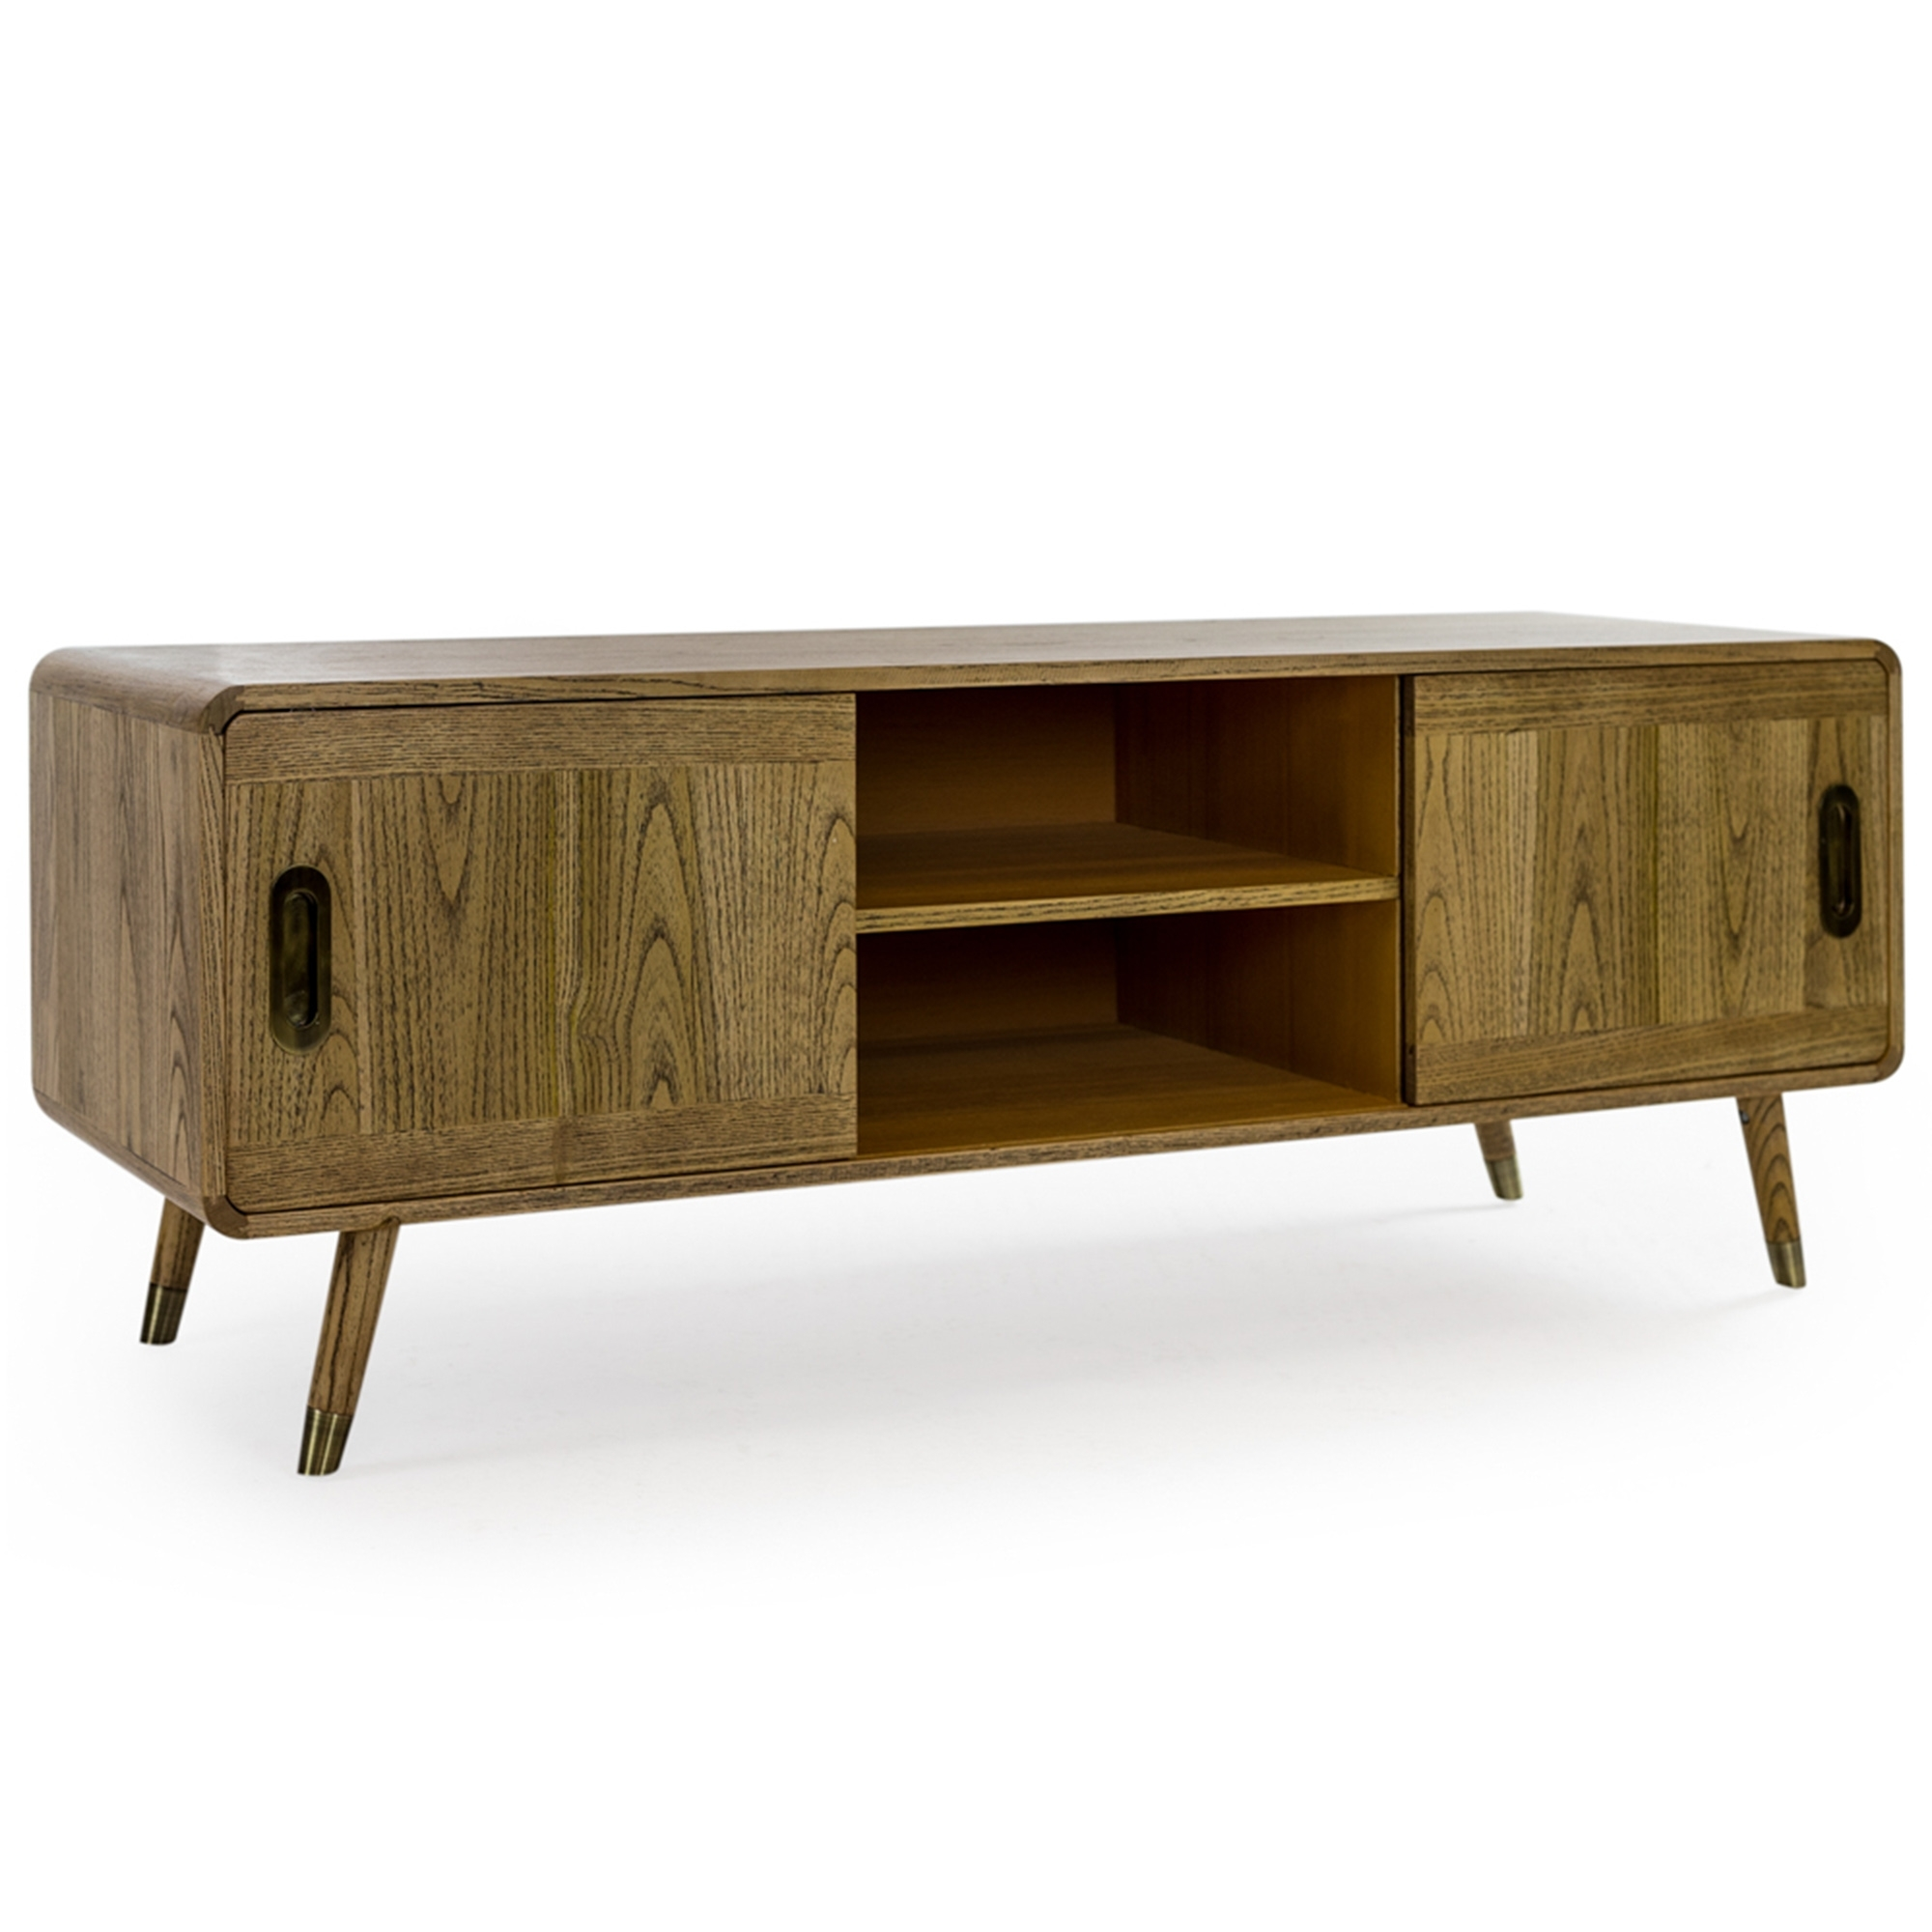 Pleasing Retro Wooden Tv Cabinet Machost Co Dining Chair Design Ideas Machostcouk